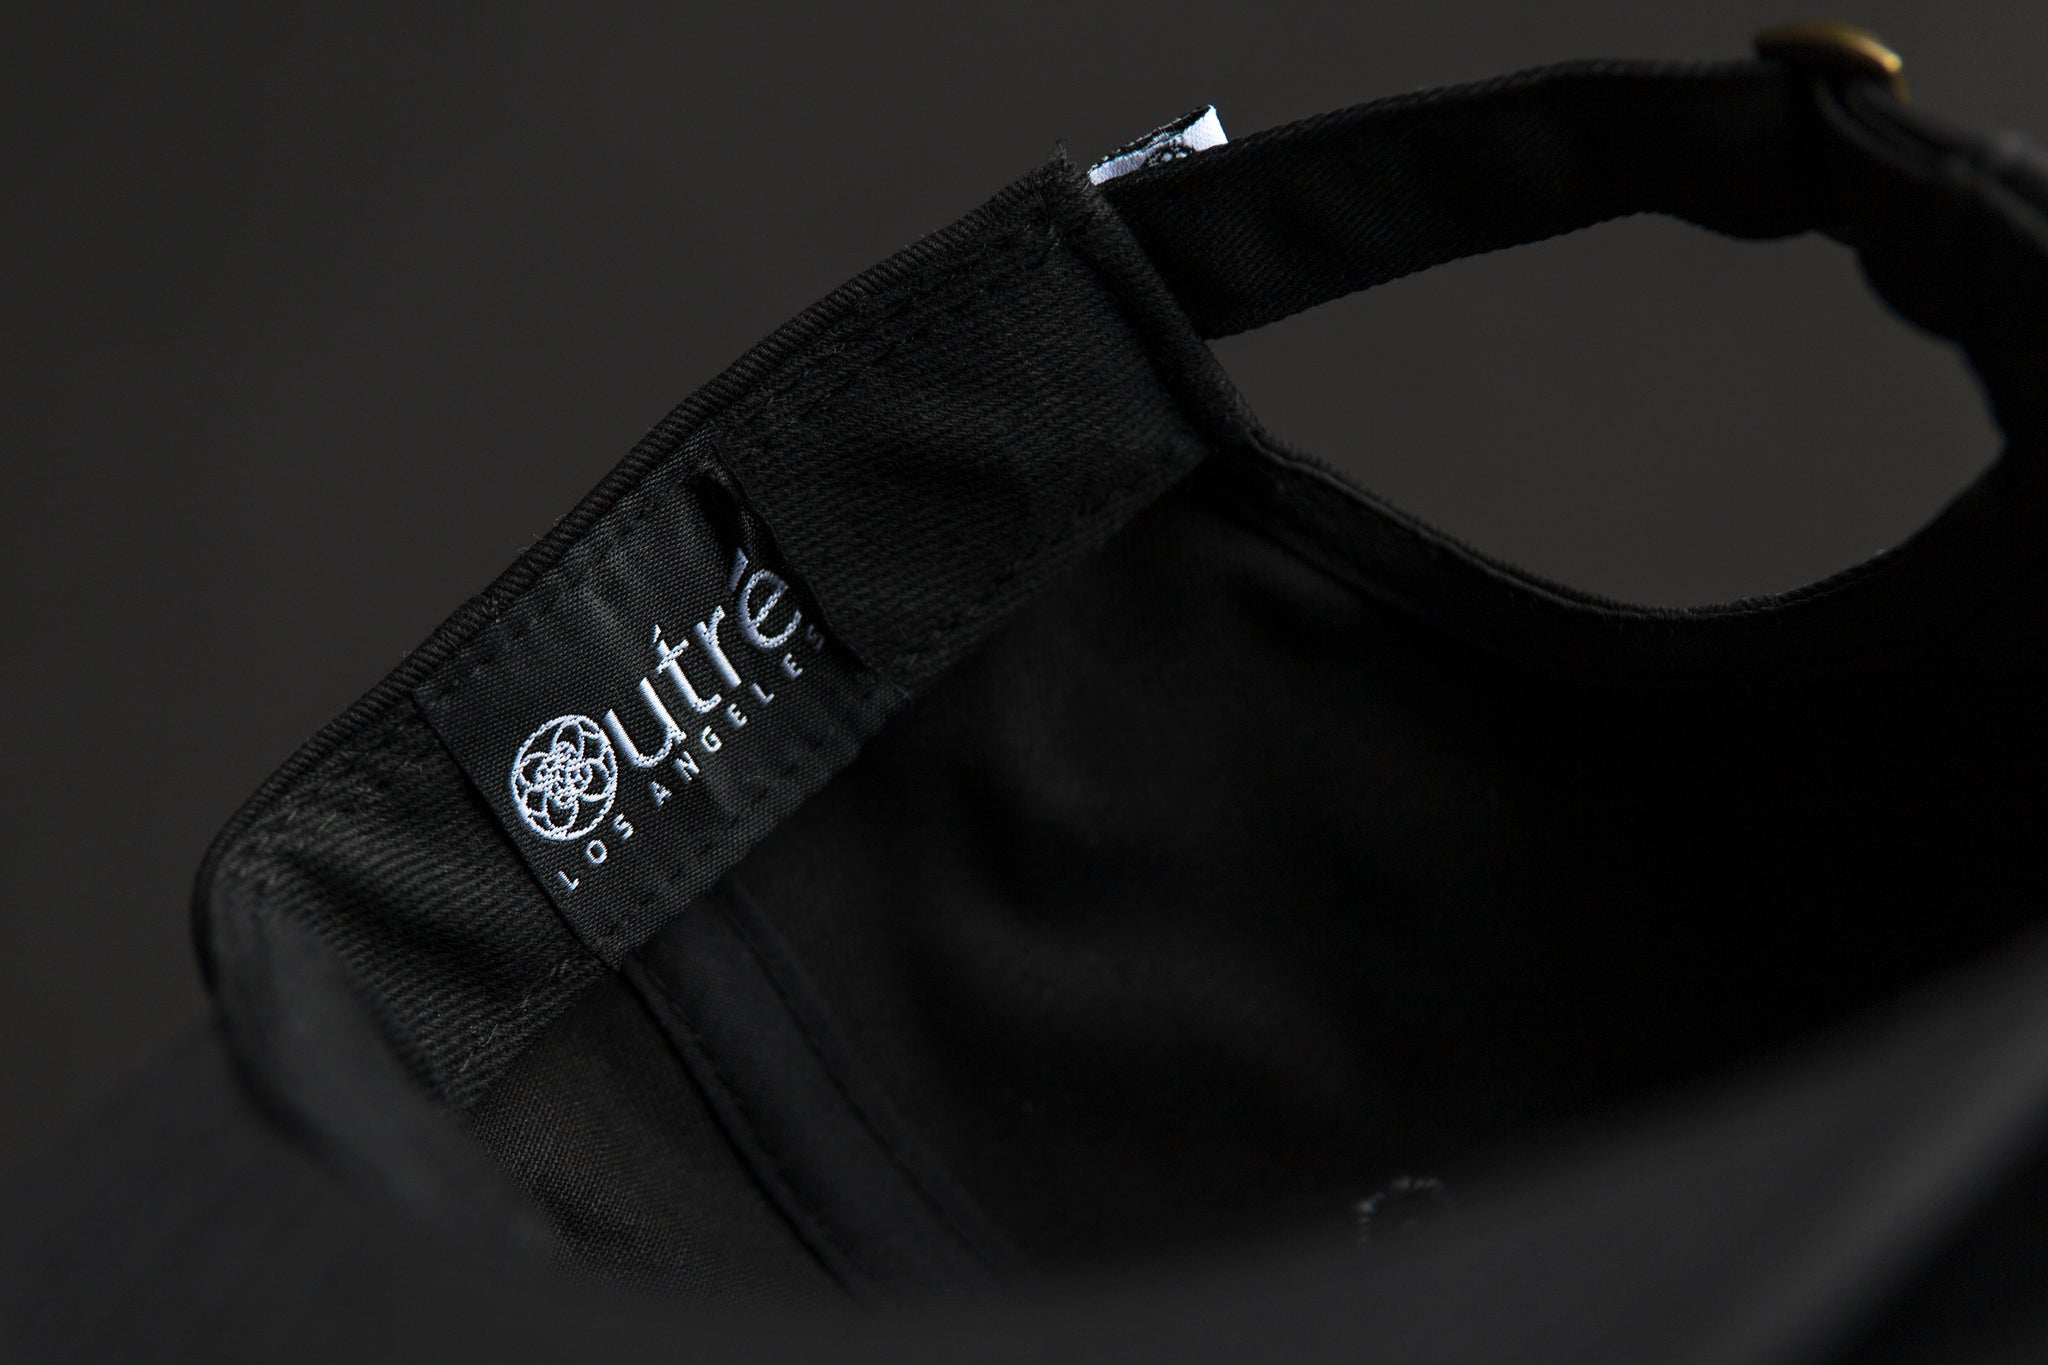 Outre vampire skull black - unstructured 6 panel sweatband woven label